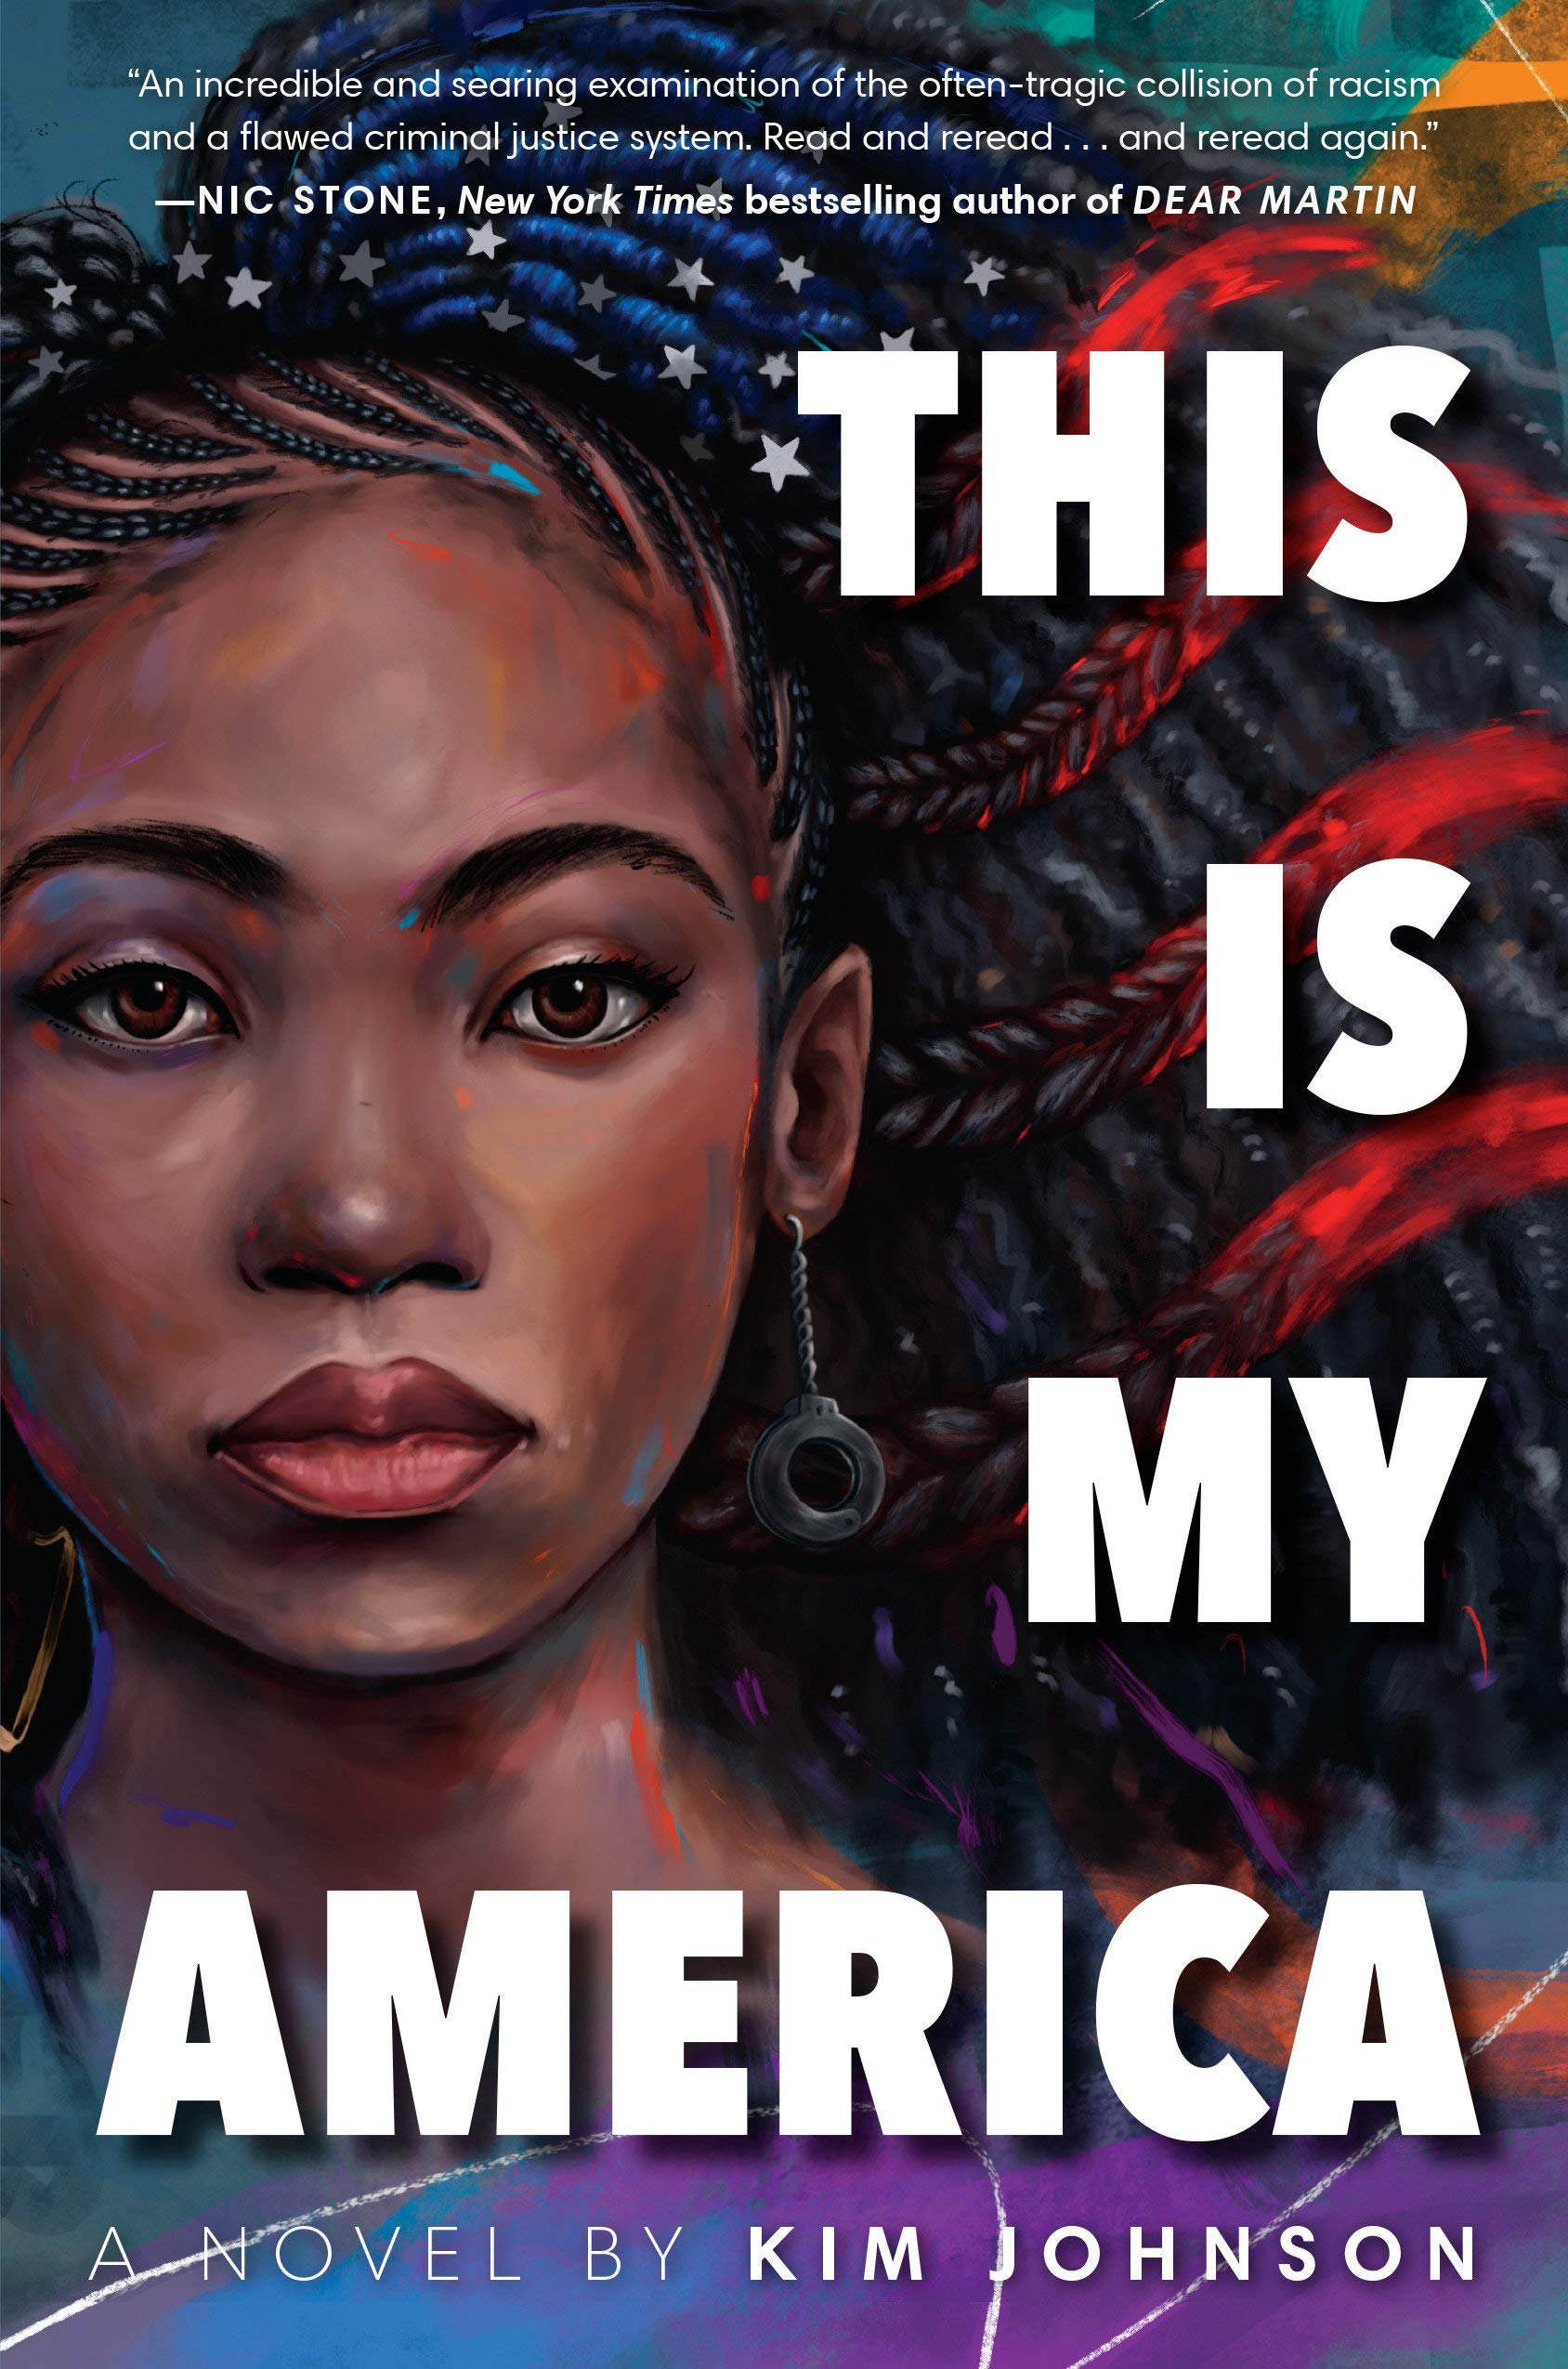 Amazon.com: This Is My America (9780593118764): Johnson, Kim: Books